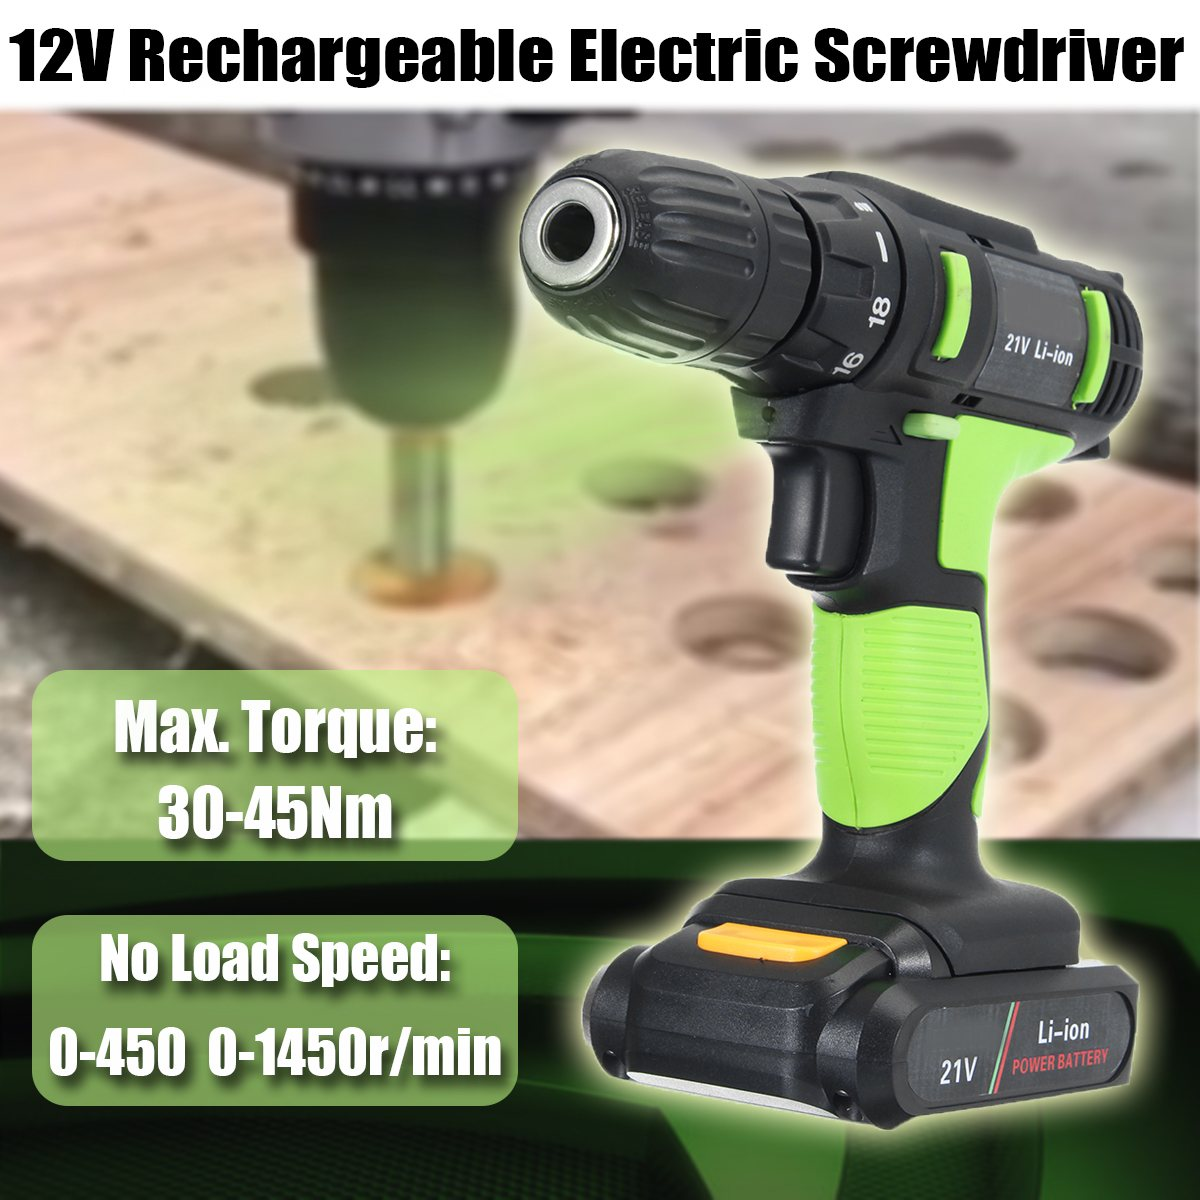 21V Electric Screwdriver Battery Screwdriver Wireless Drill Power Tools Professional Electric Torque Screwdriver + 2 Batteries free shipping brand proskit upt 32007d frequency modulated electric screwdriver 2 electric screwdriver bit 900 1300rpm tools